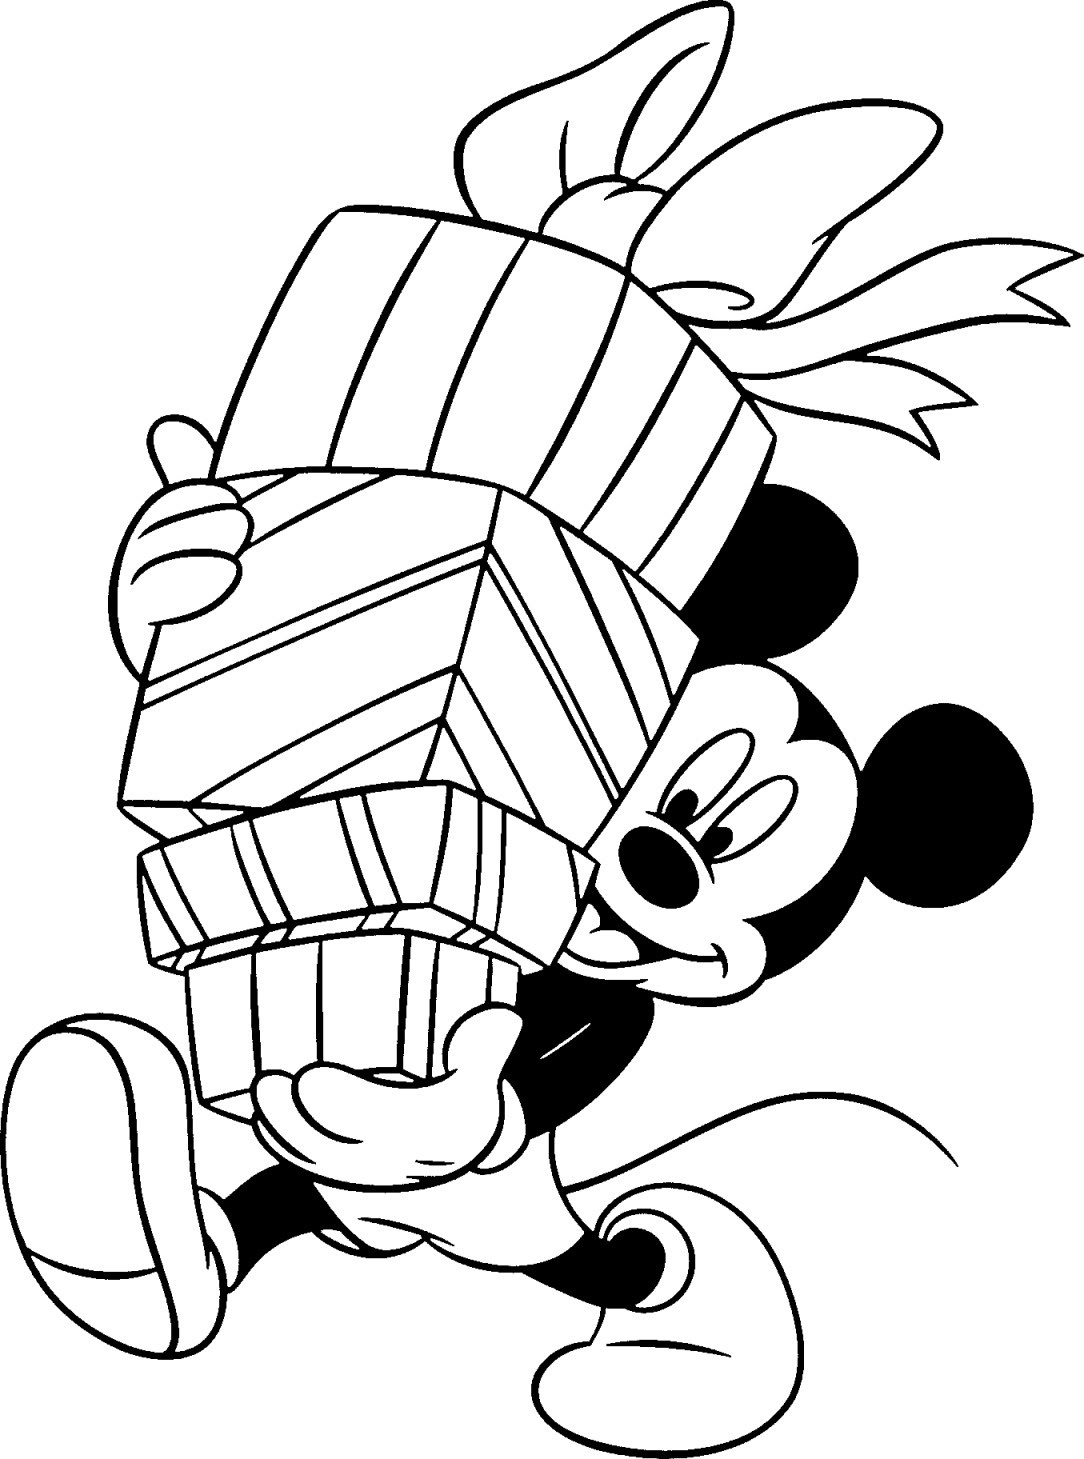 Free Disney Christmas Printable Coloring Pages for Kids ...